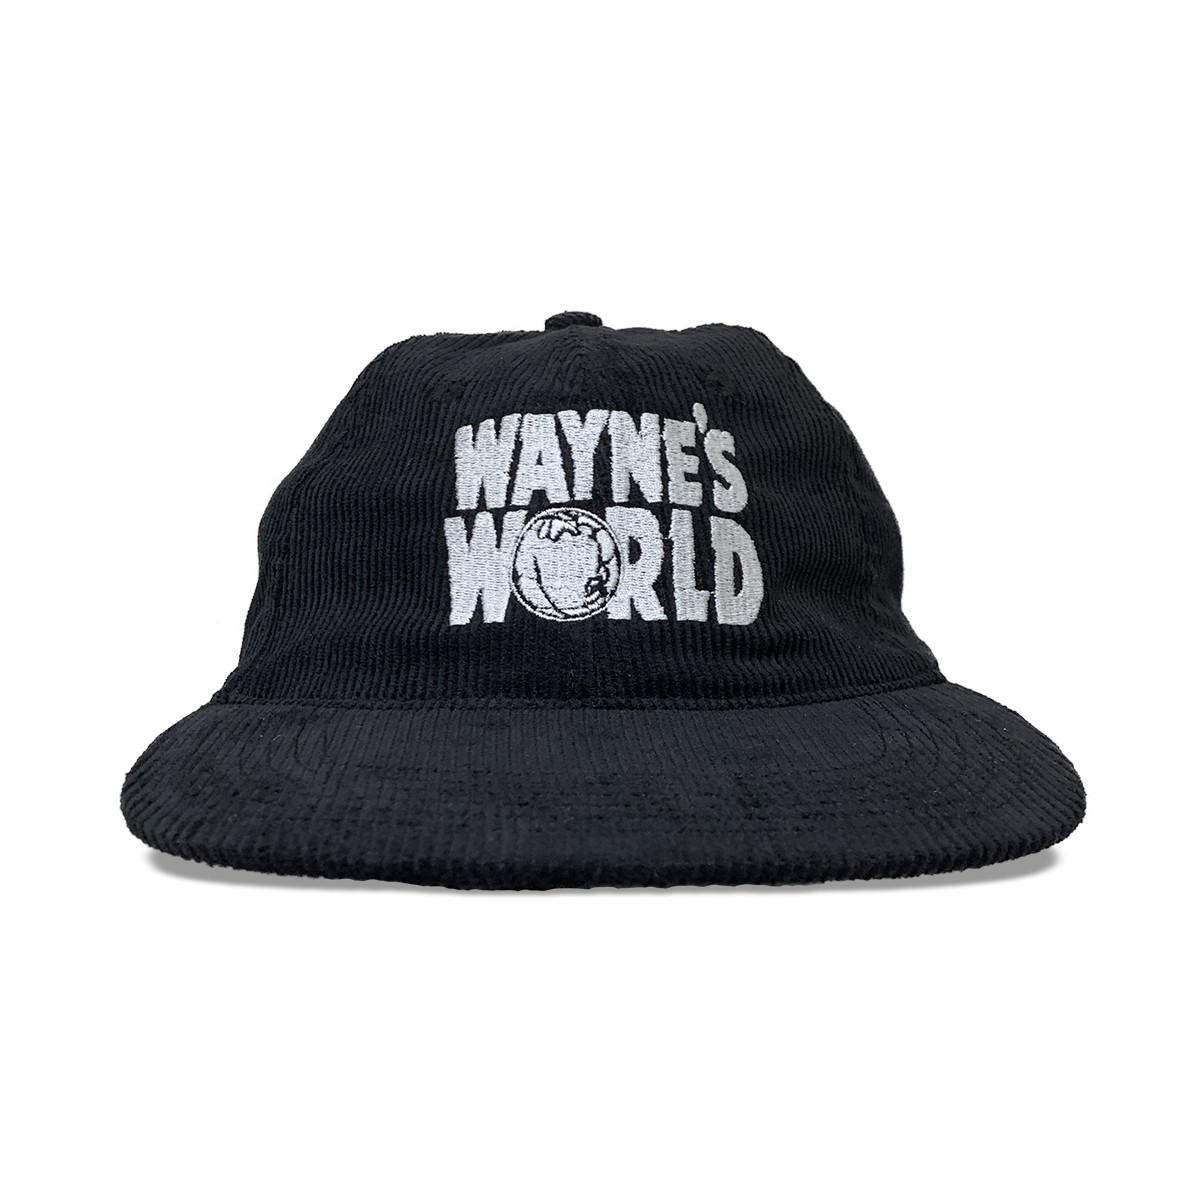 WAYNES WORLD CORD HAT BLACK